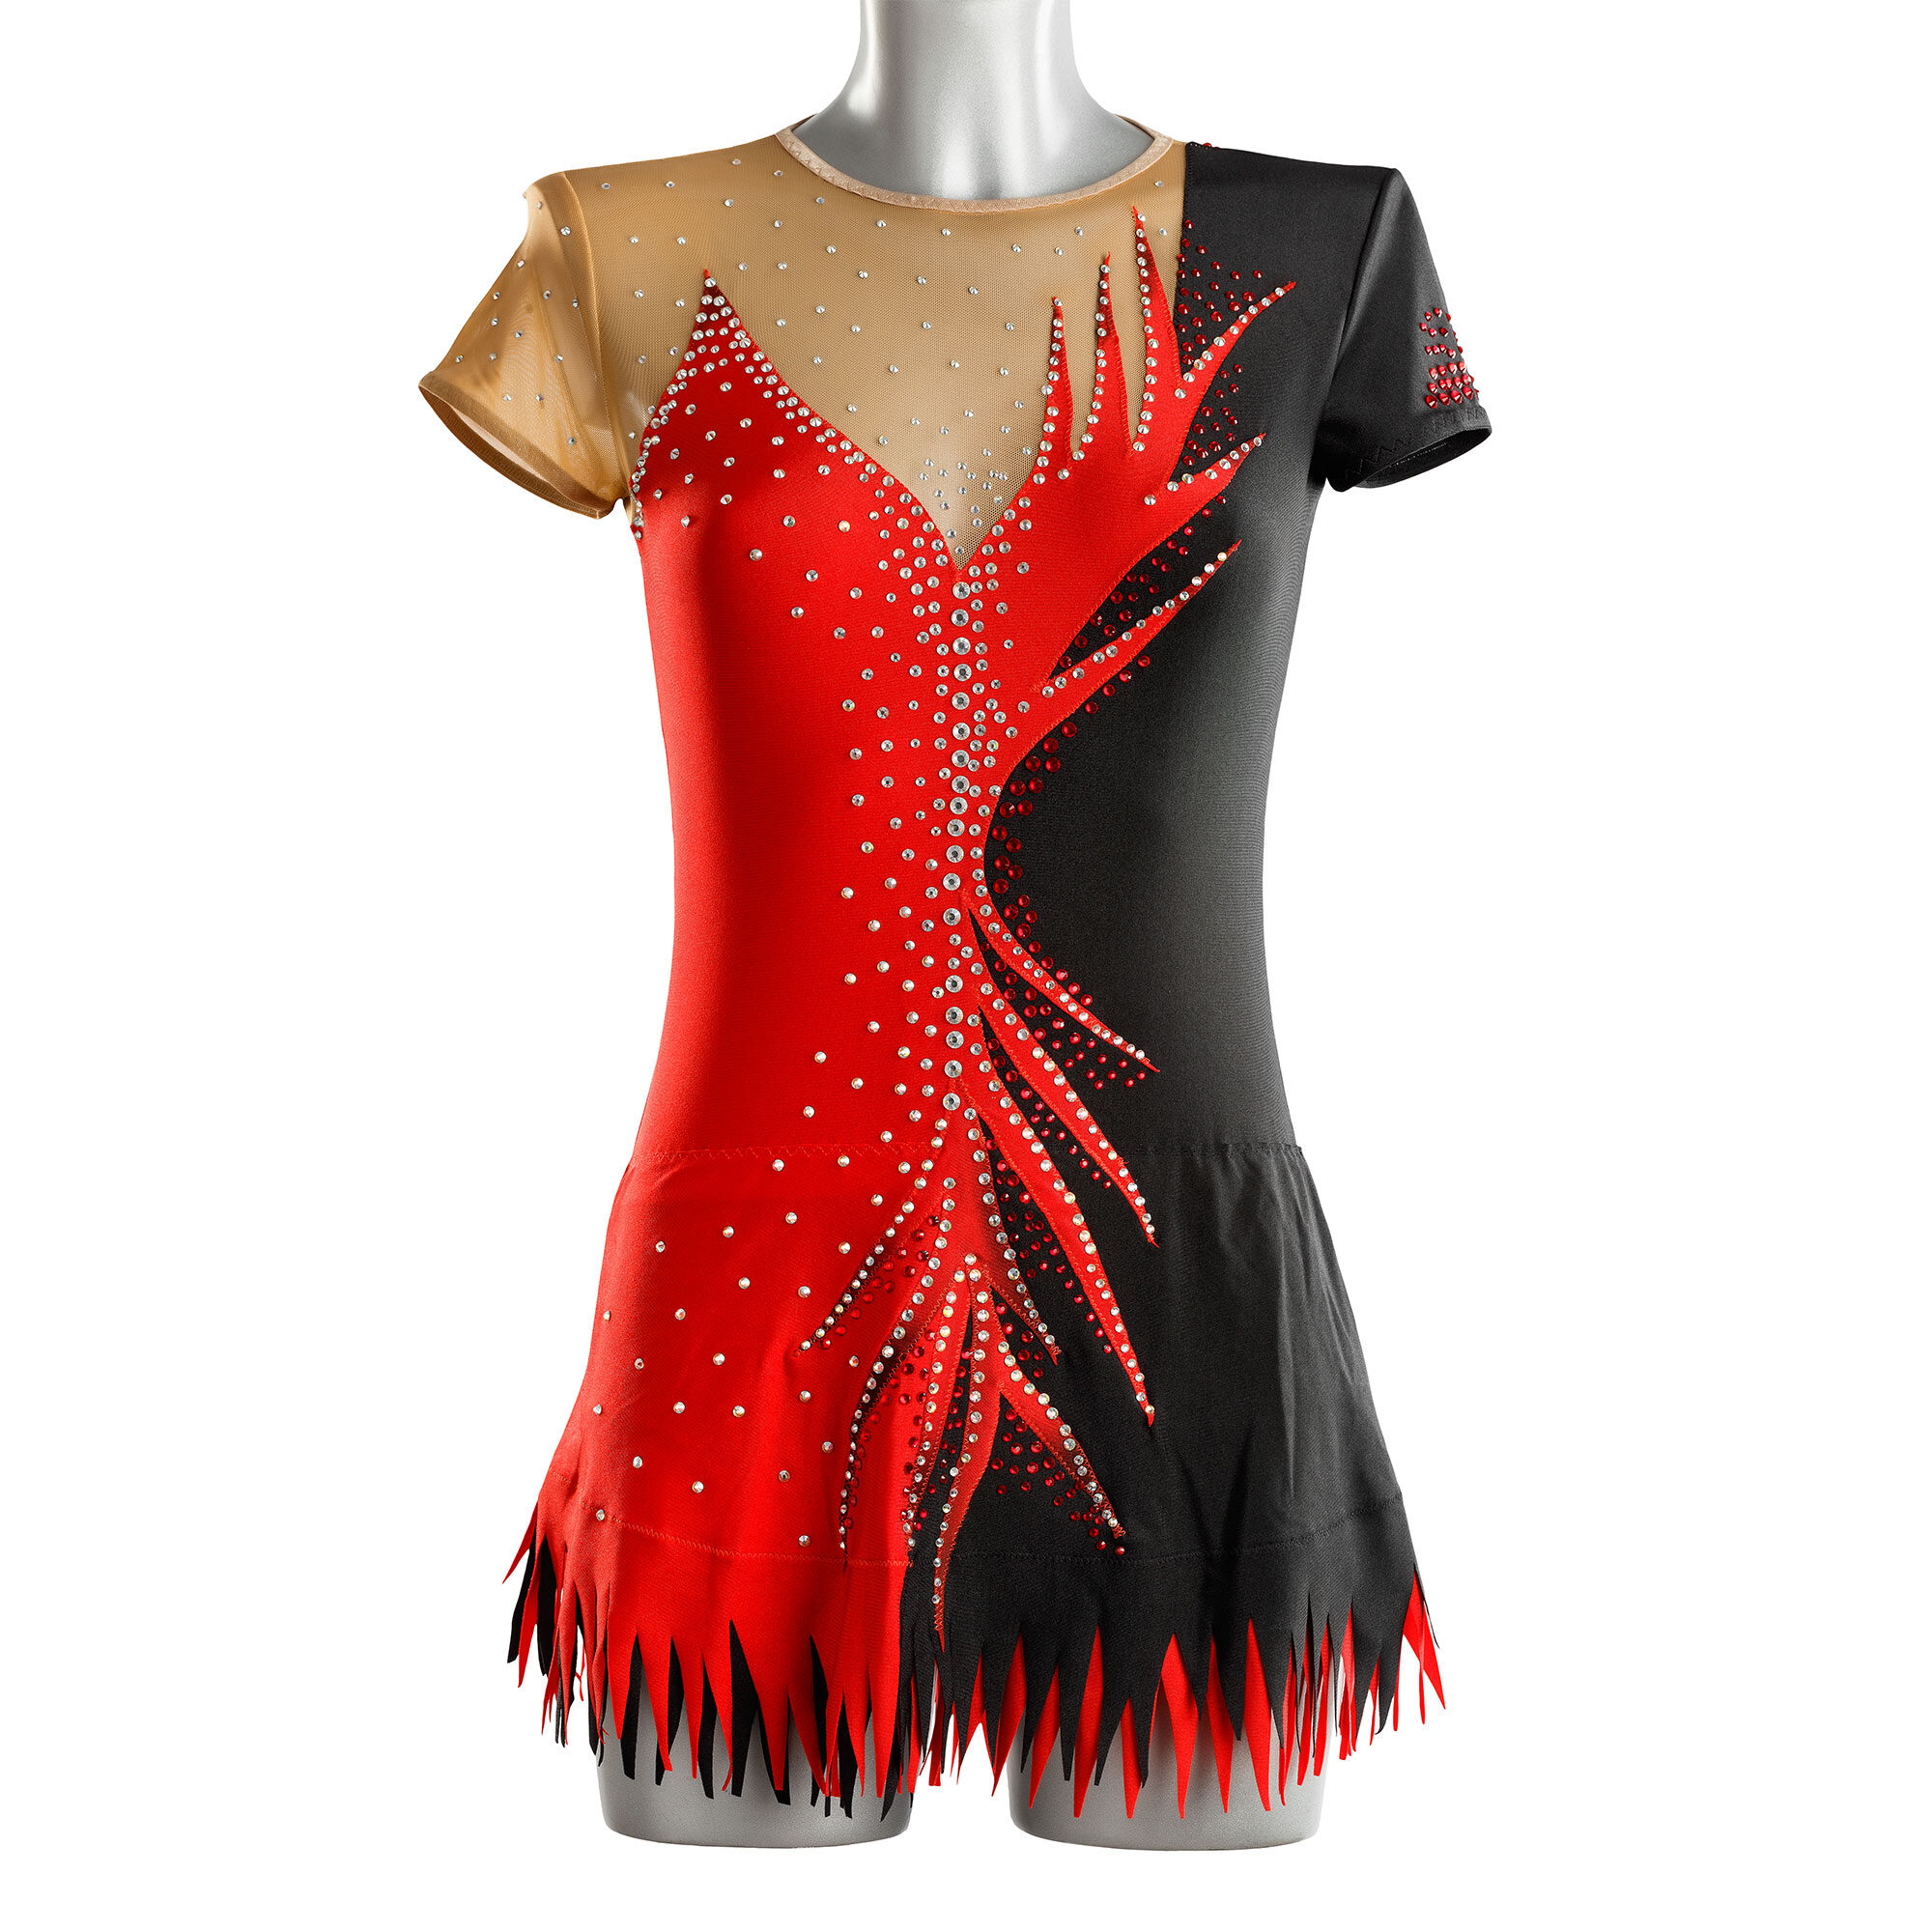 Red & Black Rhythmic Gymnastics Leotard 211 made by gymnast's measurements for trainings and competitions